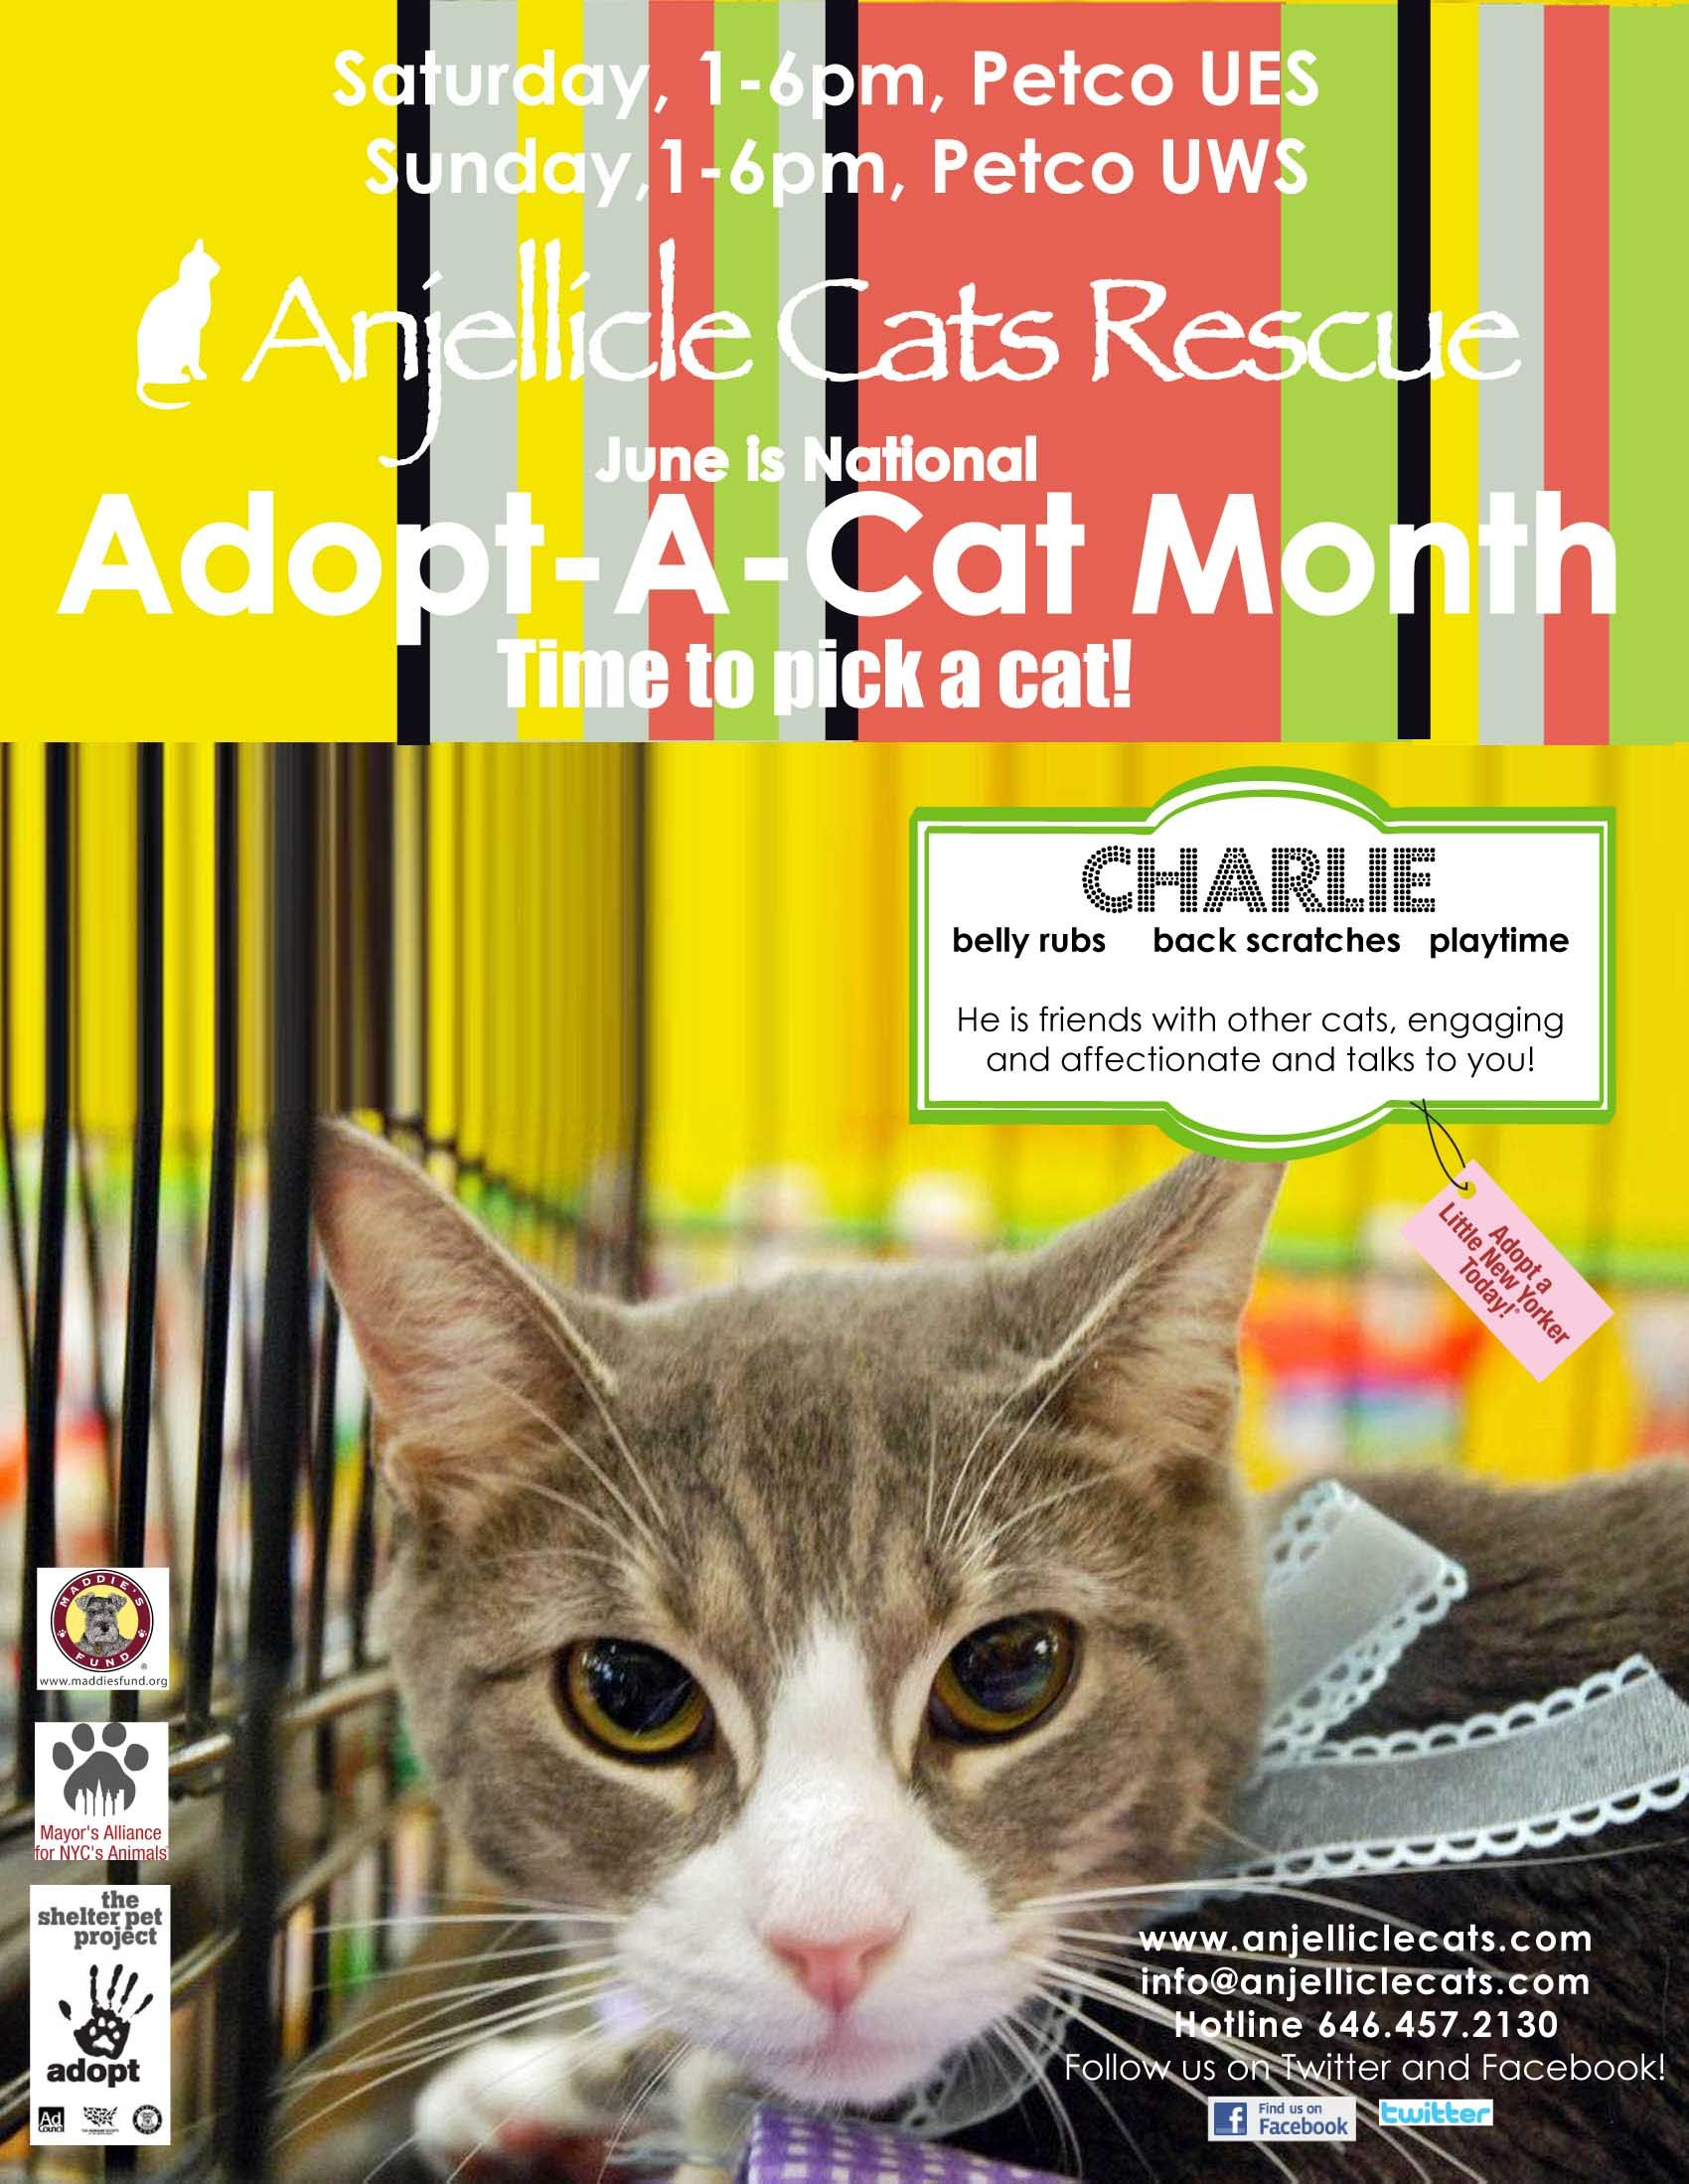 Charlie Adoption Events Saturdays And Sunday To See Our Adoptable Cats Petco 1280 Lexington Ave Ny Sat 1 6pm Petco Cat Adoption Cat Rescue Cat City